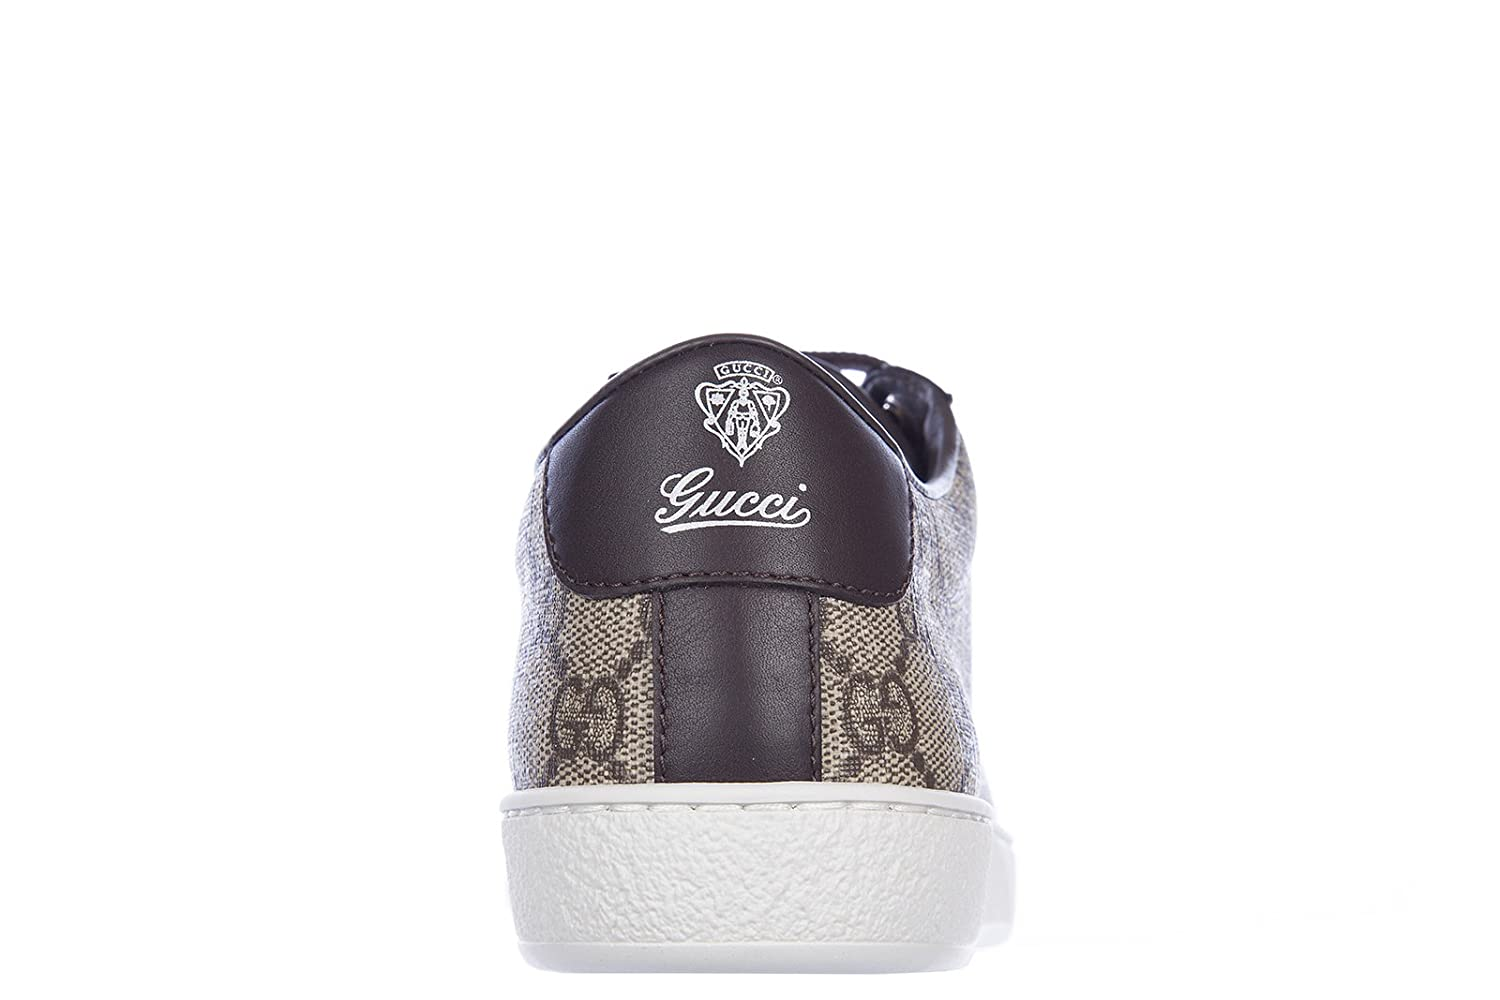 Amazon.com: Gucci Womens Shoes Trainers Sneakers Fabric gg Supreme mirò Soft Brown US Size 8 323793 KHN80 9760: Shoes